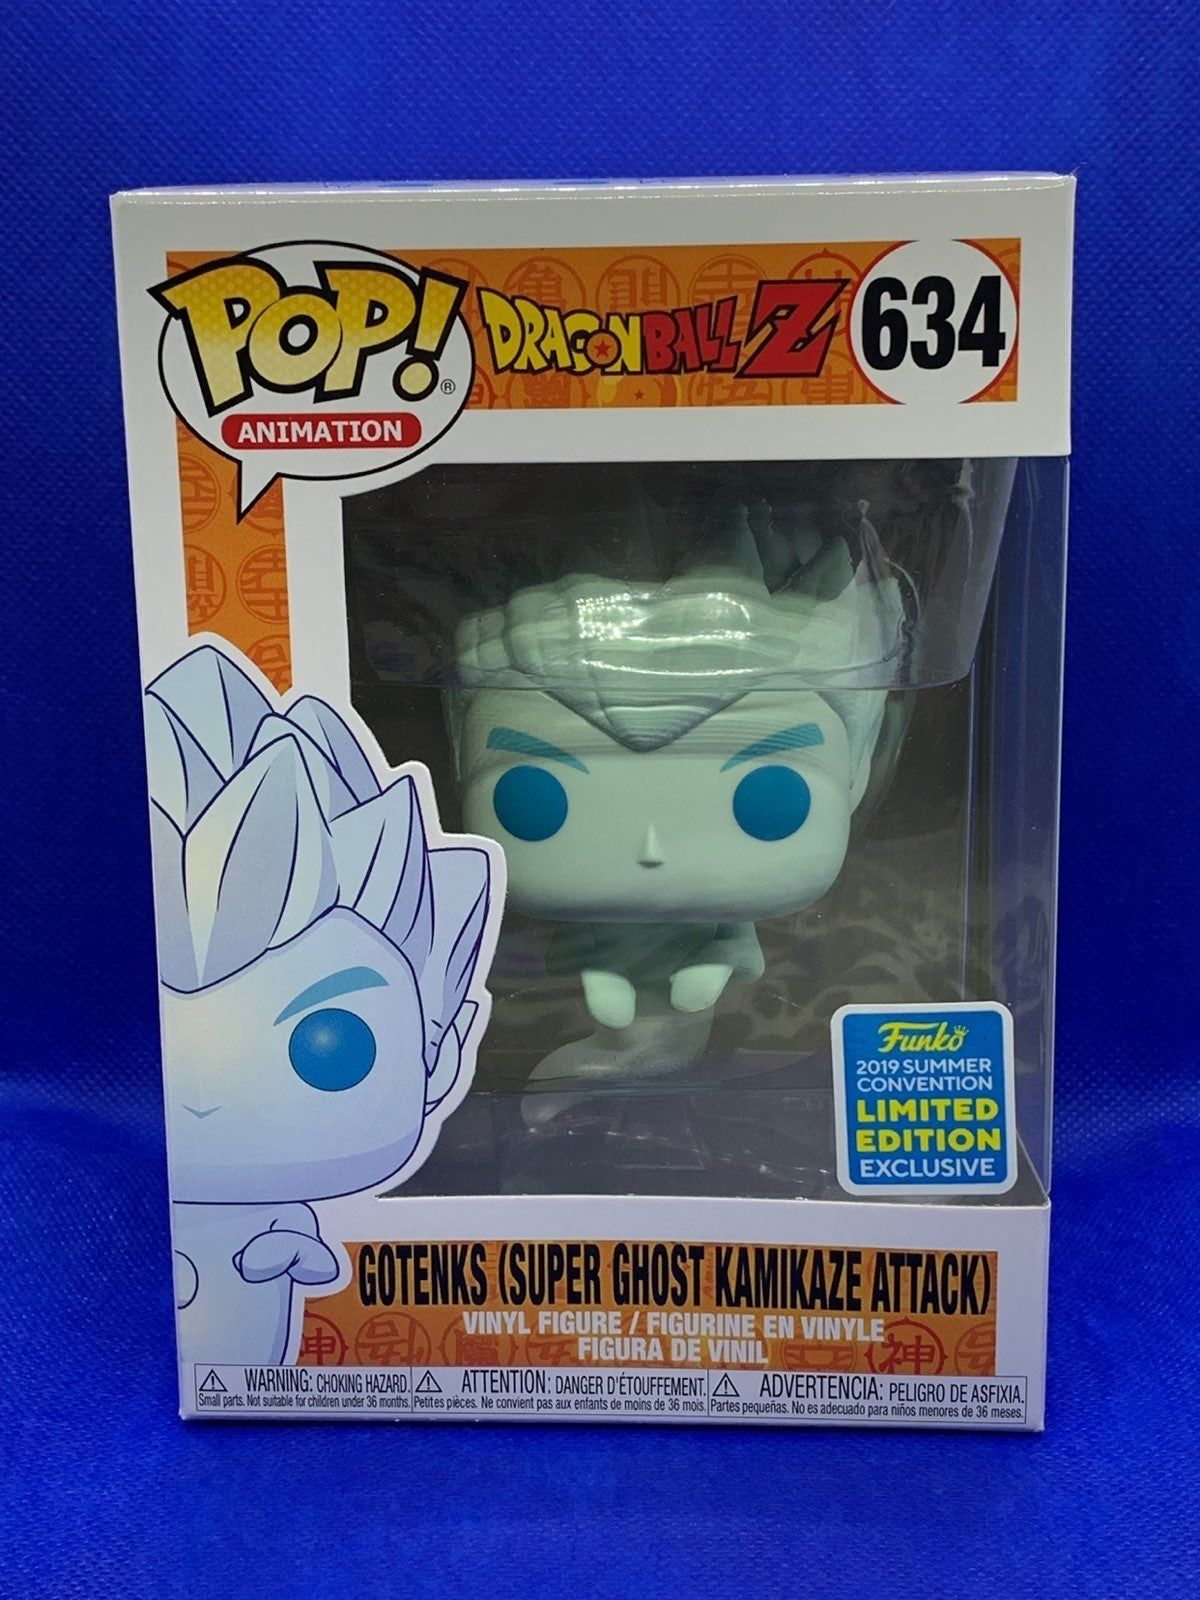 2019 Summer Convention Exclusive Gotenks Super Ghost Kamikaze Attack Pop Buy With The Confidence That Your Item Will Arrive Saf Vinyl Figures Kamikaze Ghost